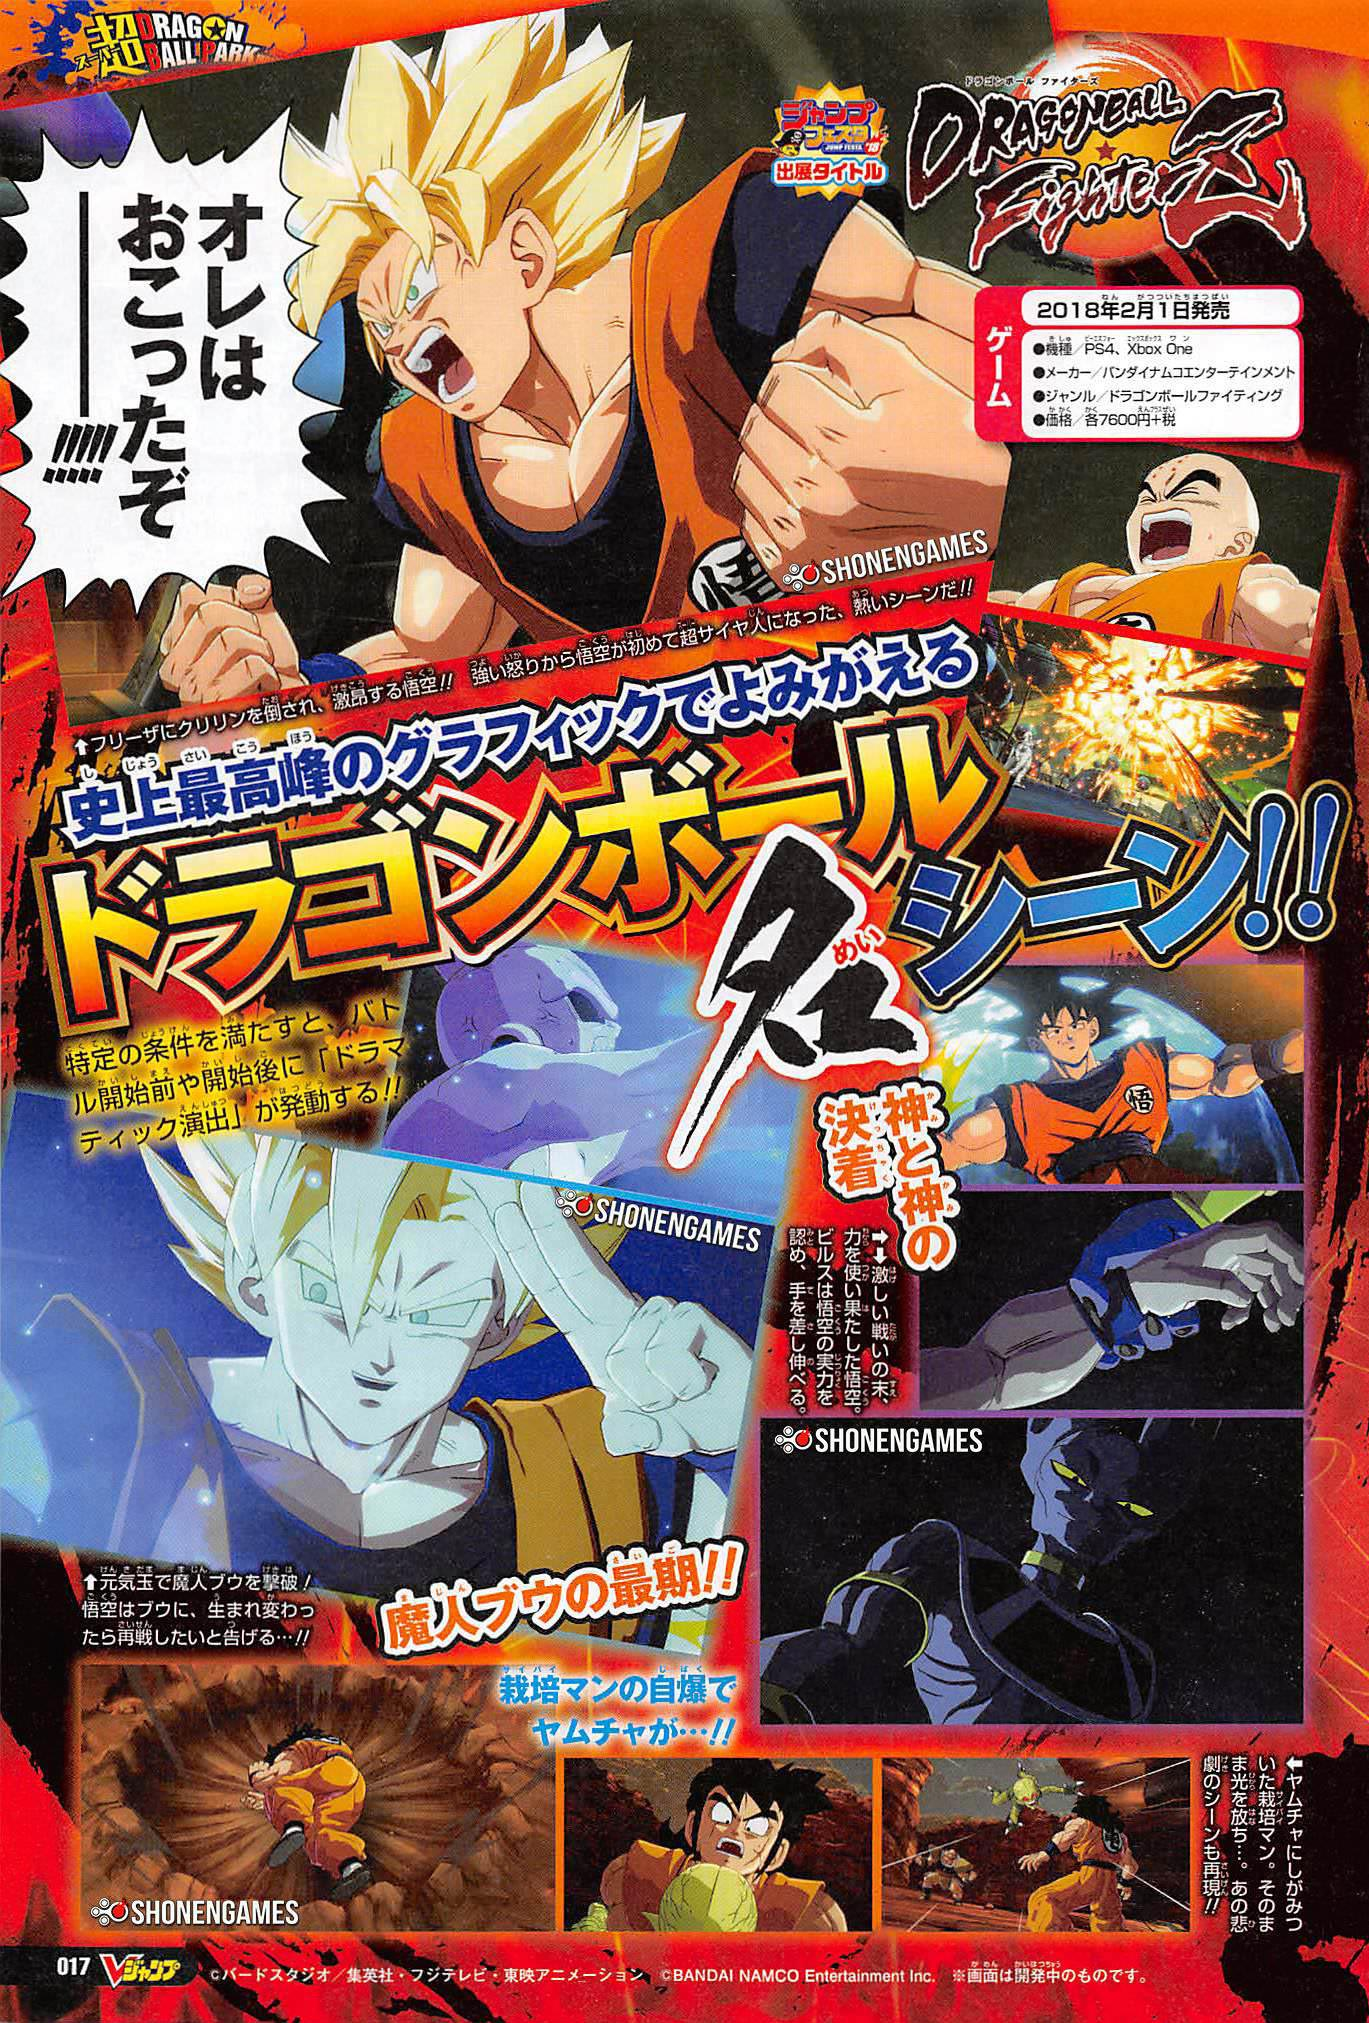 Goku Black, Beerus, and Hit Dragon Ball FighterZ scan 2 out of 2 image gallery